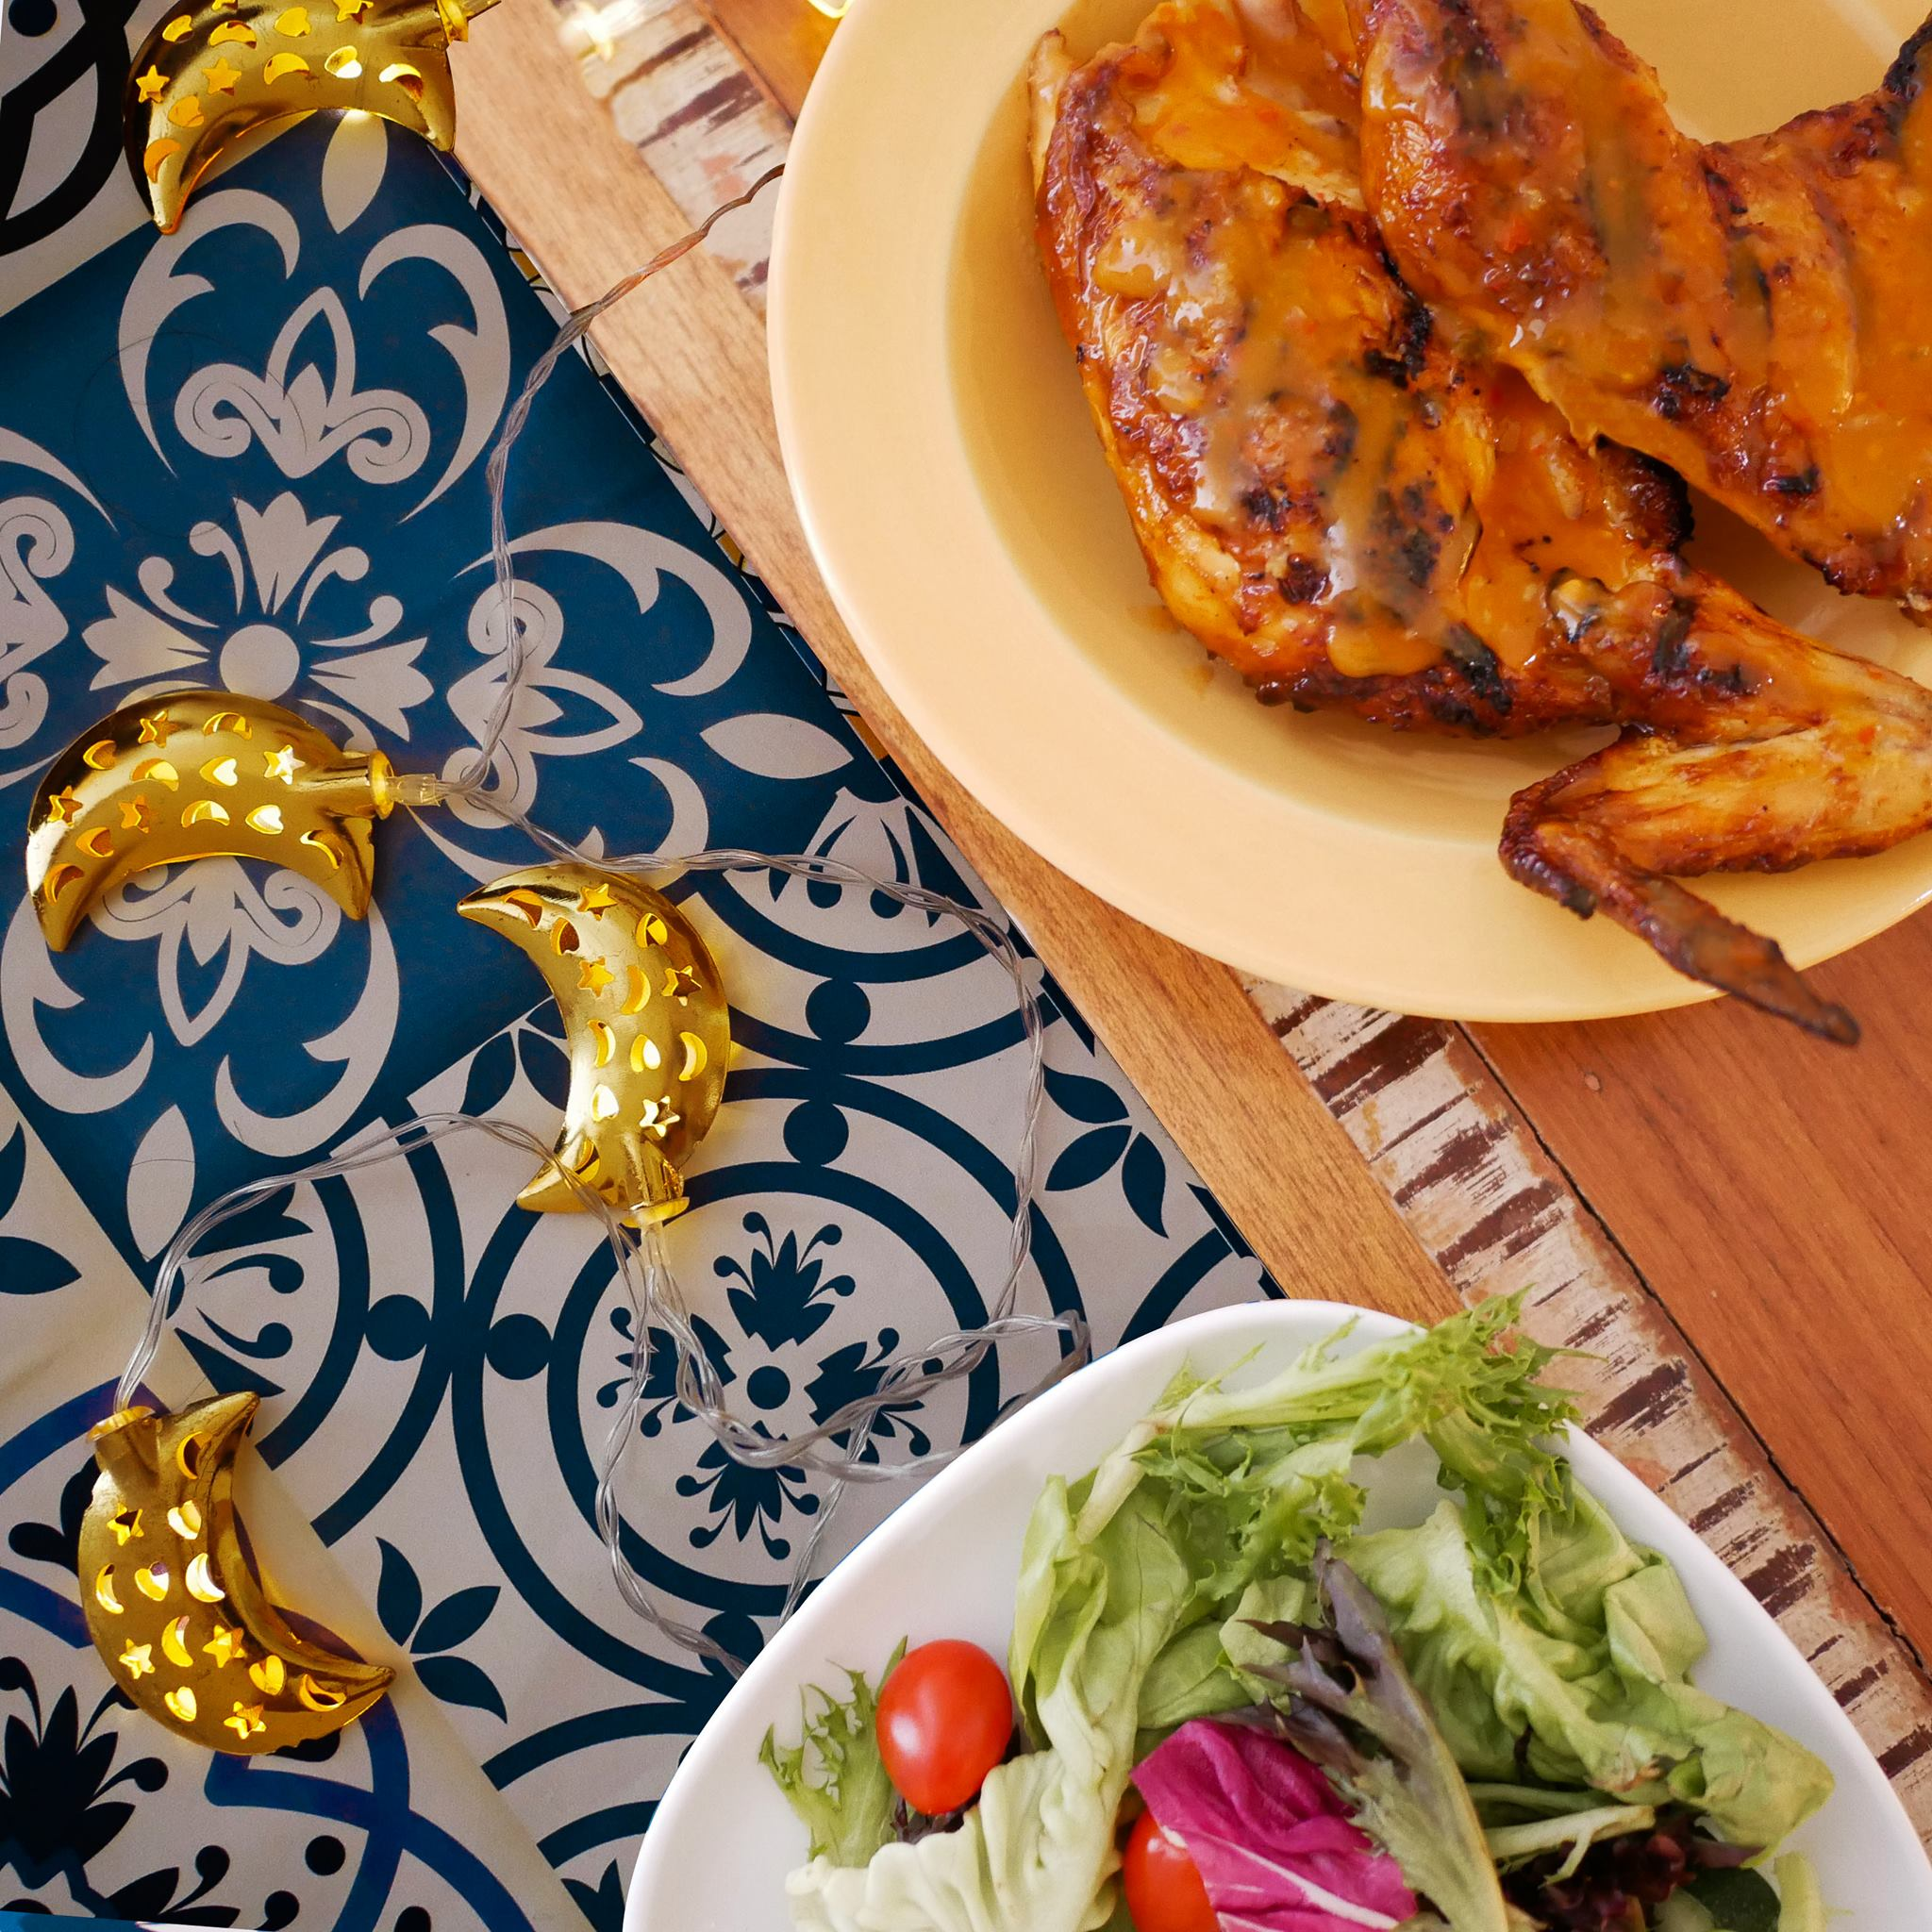 Look at that pretty, glistening PERi-PERi chicken waiting for you.